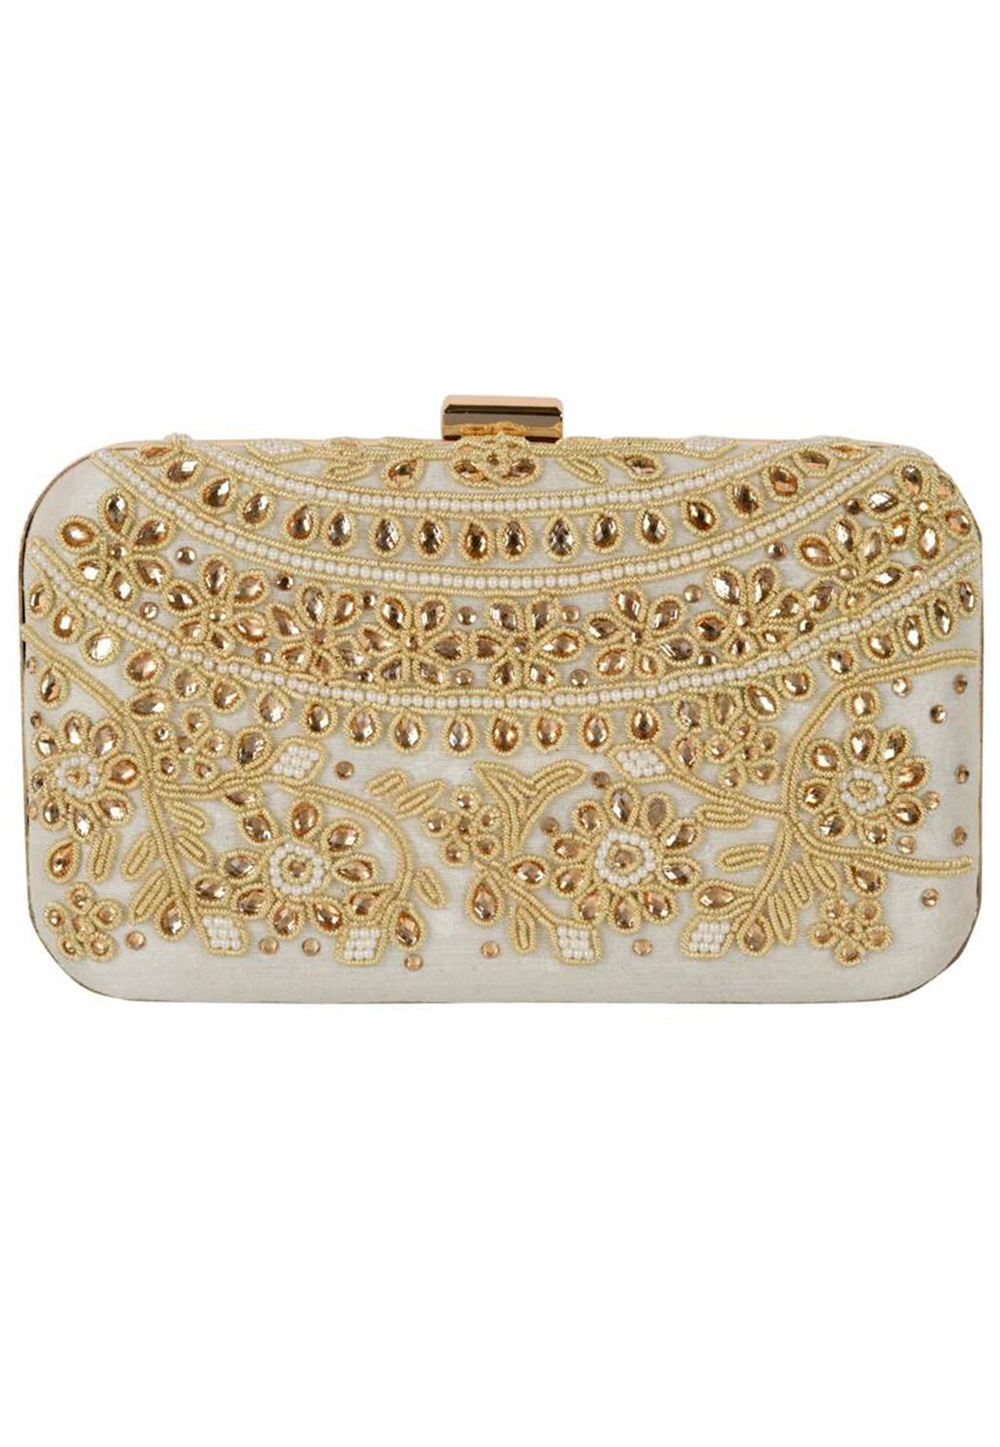 Off White Synthetic Embroidered Clutch 225839